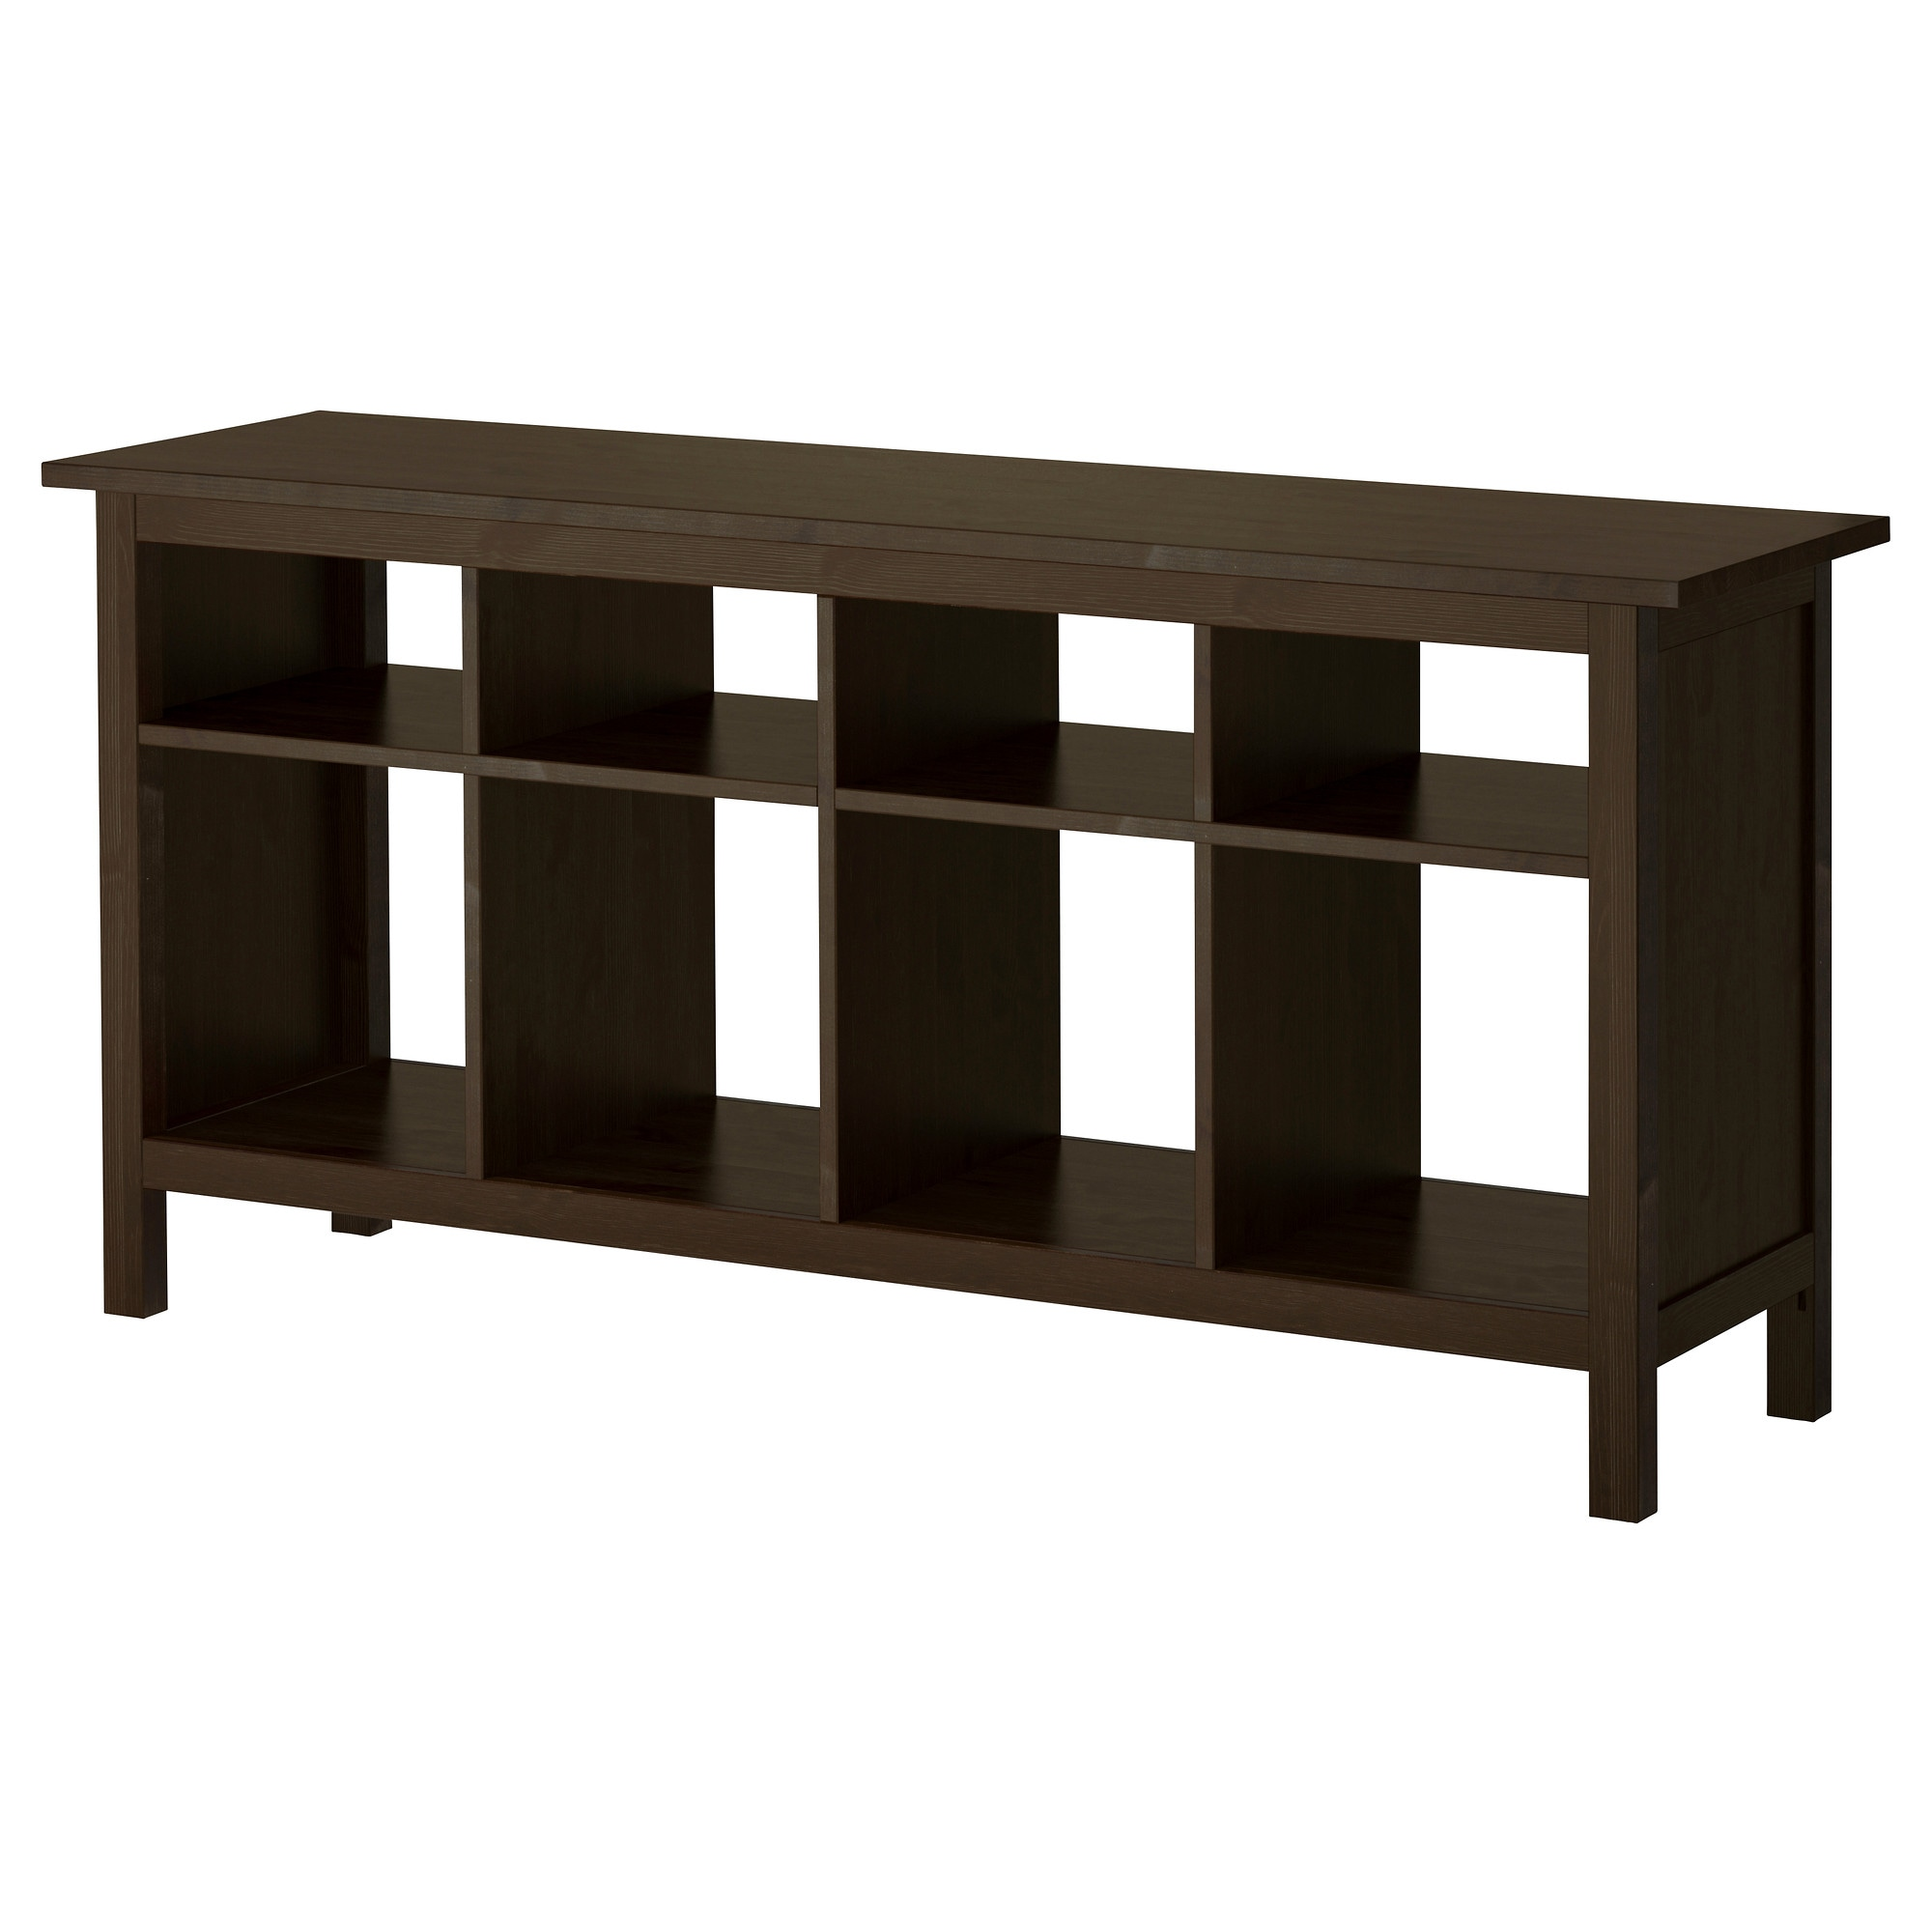 HEMNES Console Table   Black Brown   IKEA